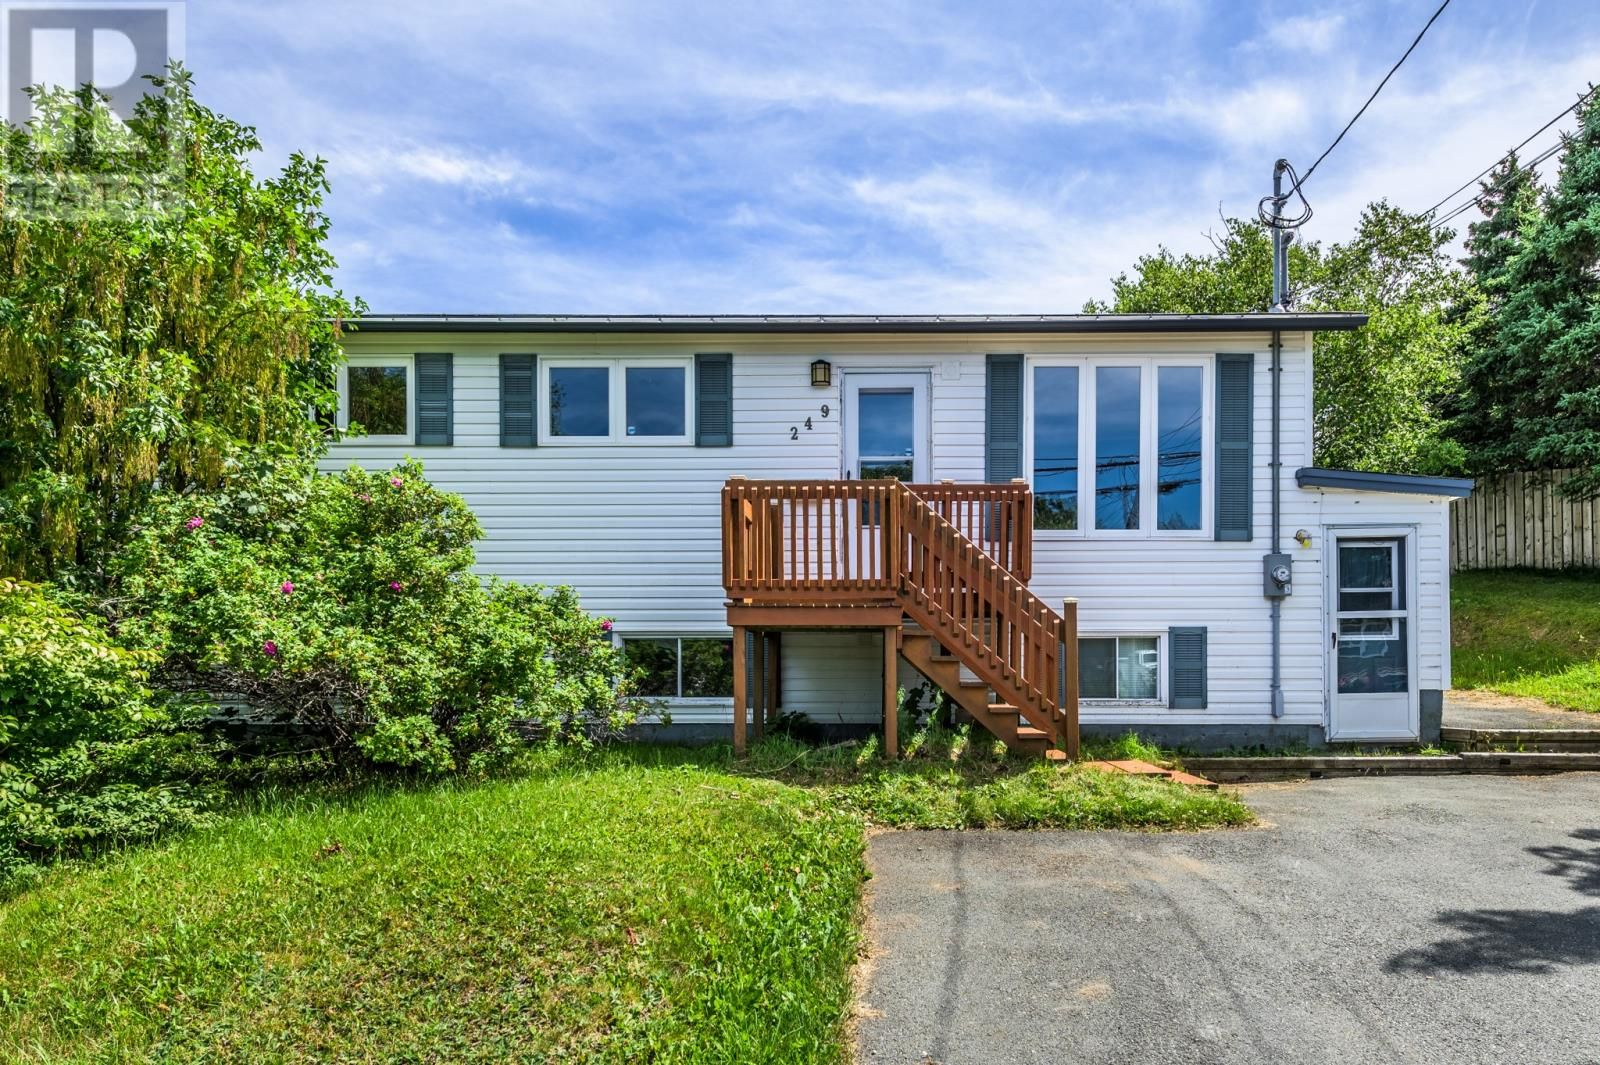 Main Photo: 249 Mundy Pond Road in St. John's: House for sale : MLS®# 1235613